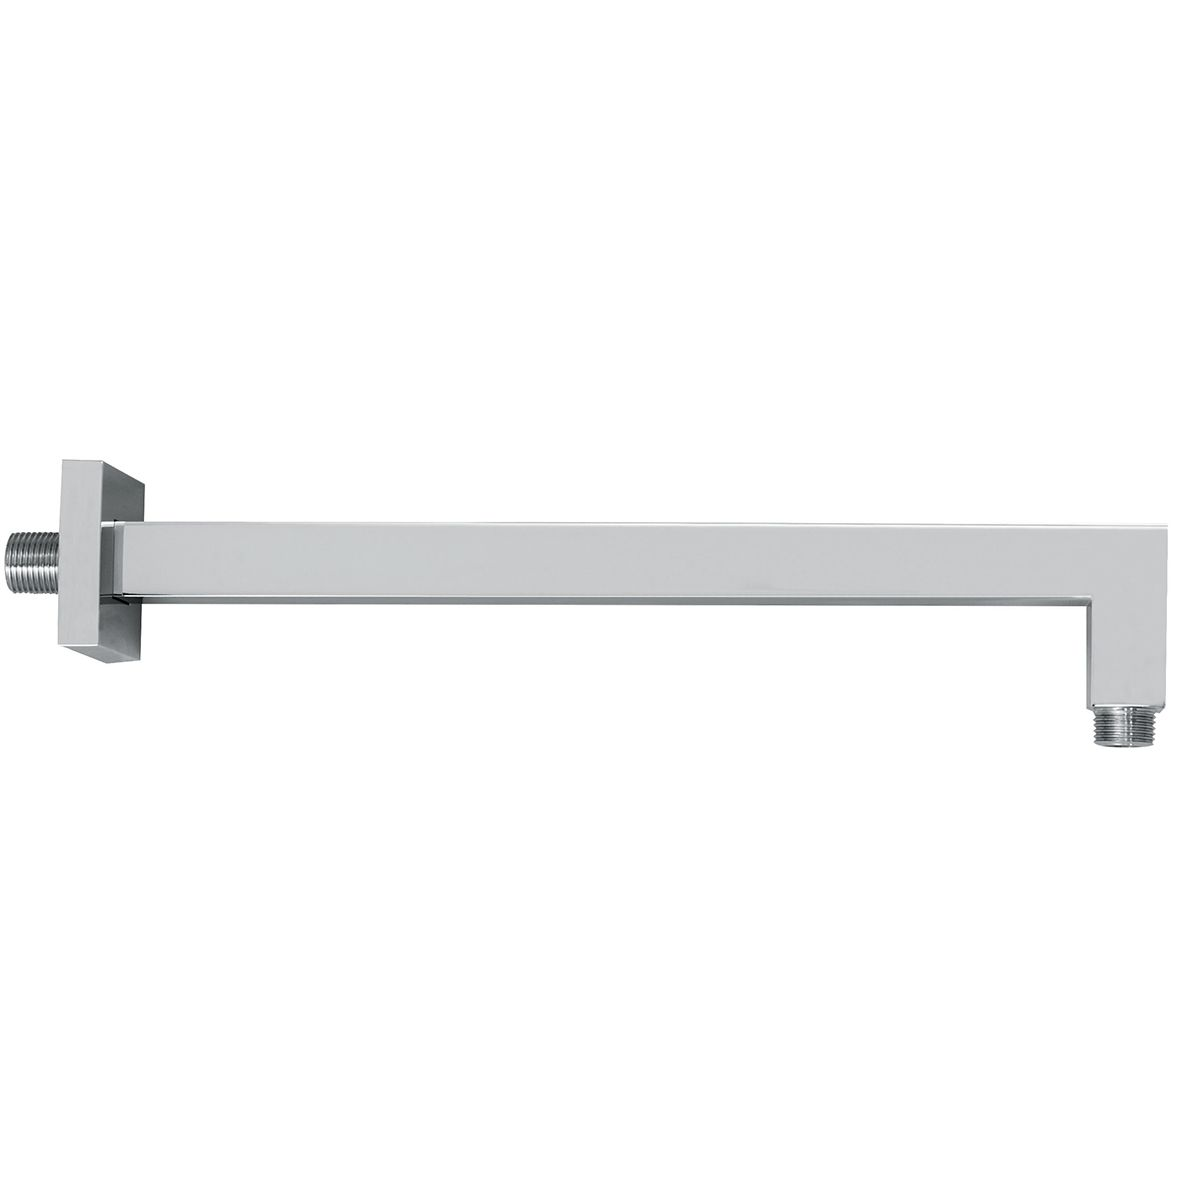 Bathrooms To Love Vema Chrome Square Wall Mounted Shower Arm 300mm